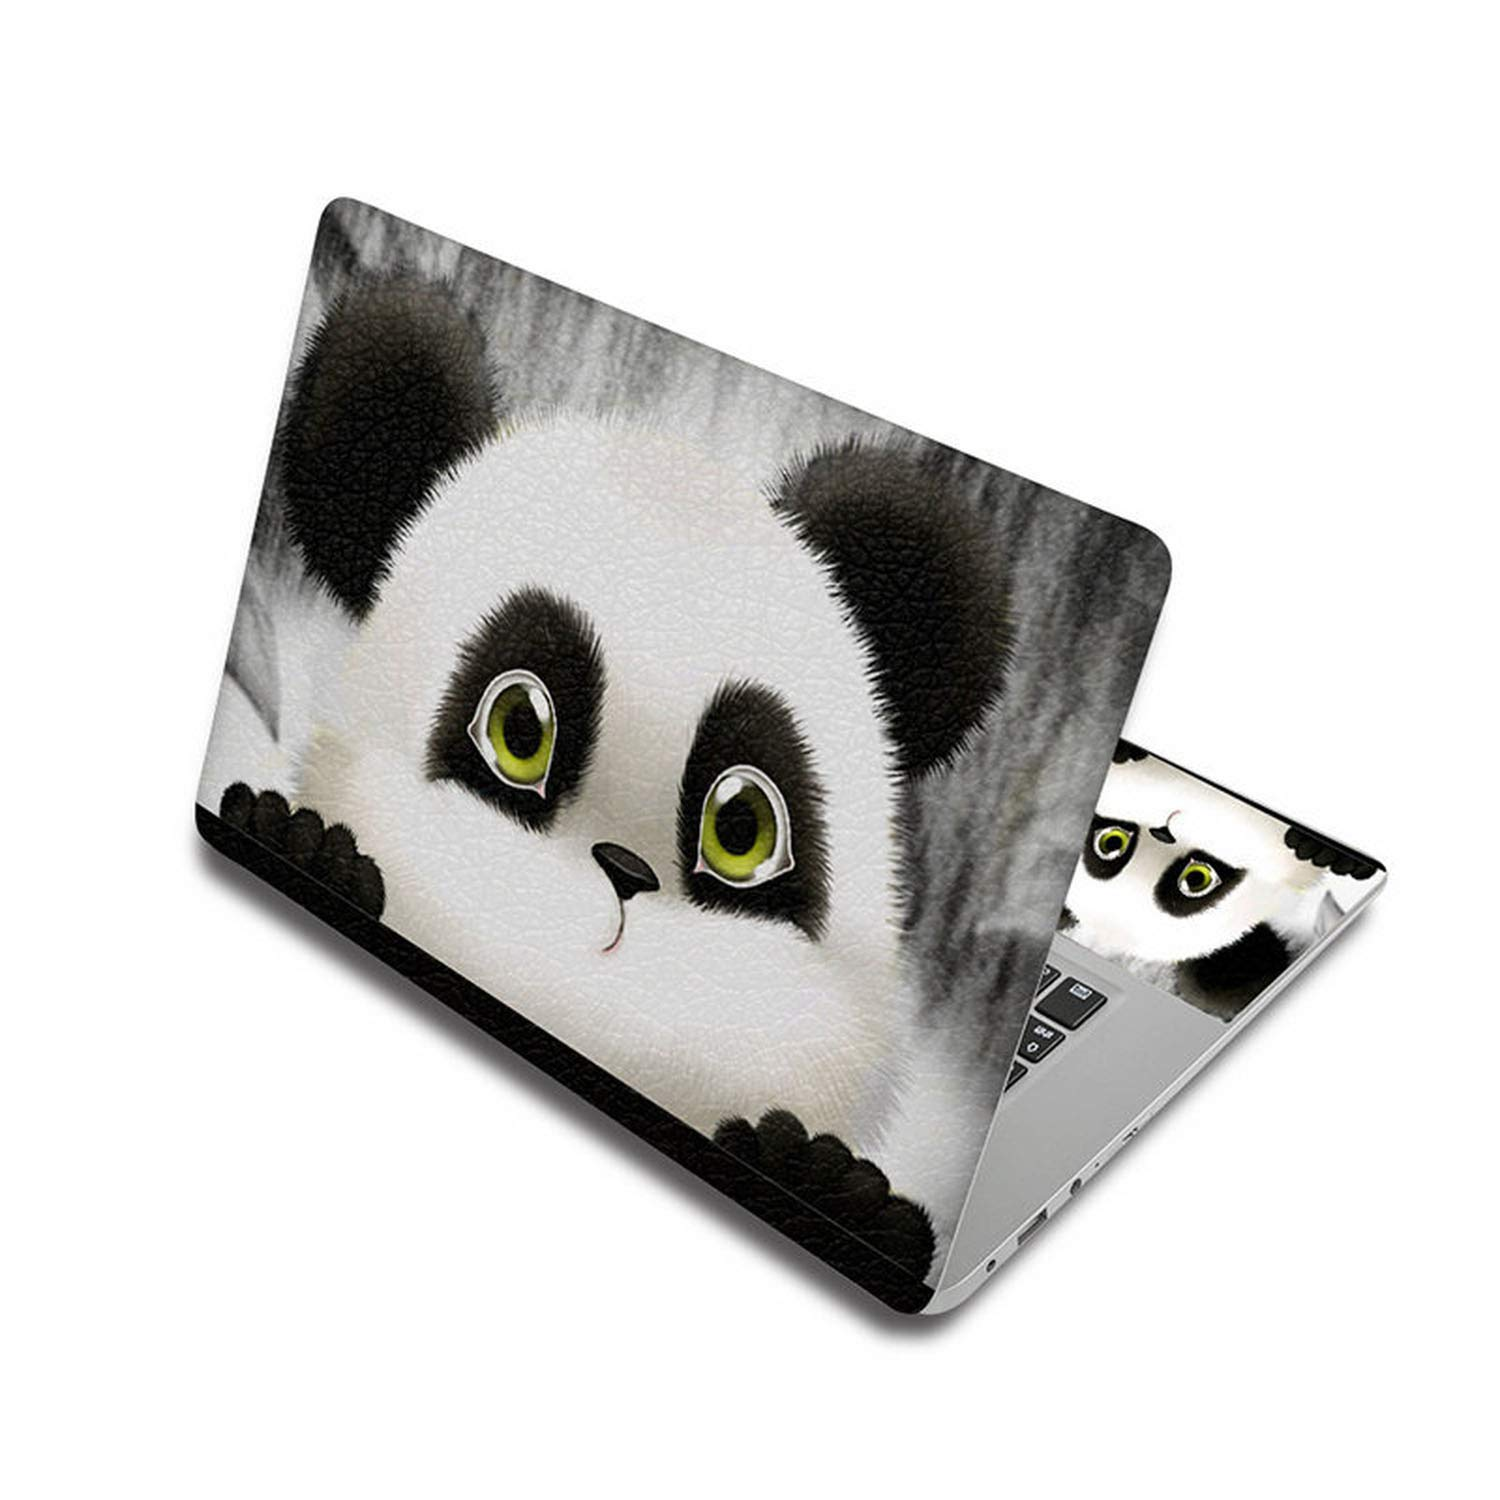 Vinyl Laptop Stickers For Laptop 17 3 15 6 13 3 Skin For Girls 14 12 Notebook Decals Cover For Macbook Pro 15 Xiaomi 13 Hp Dell Asus 15 Inch Laptop Skin 2 38x27cm Accessories Accessories Supplies